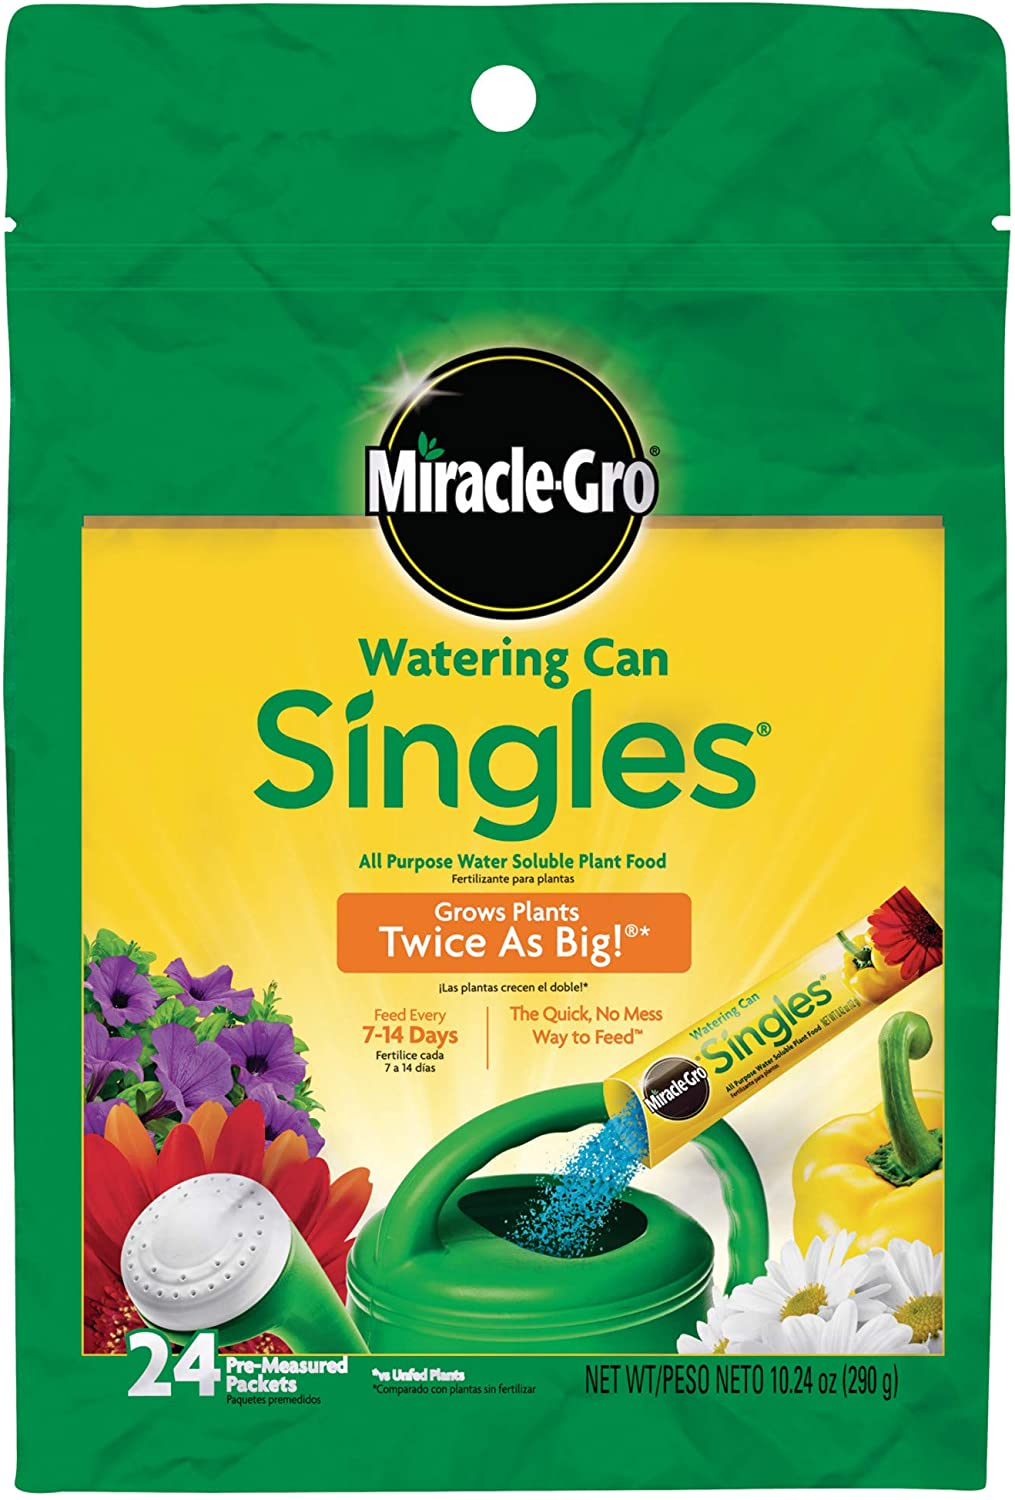 Miracle-Gro Watering Can Singles All Purpose Water Soluble Plant Food, Includes 24 Pre-Measured Packets : Fertilizers : Garden & Outdoor